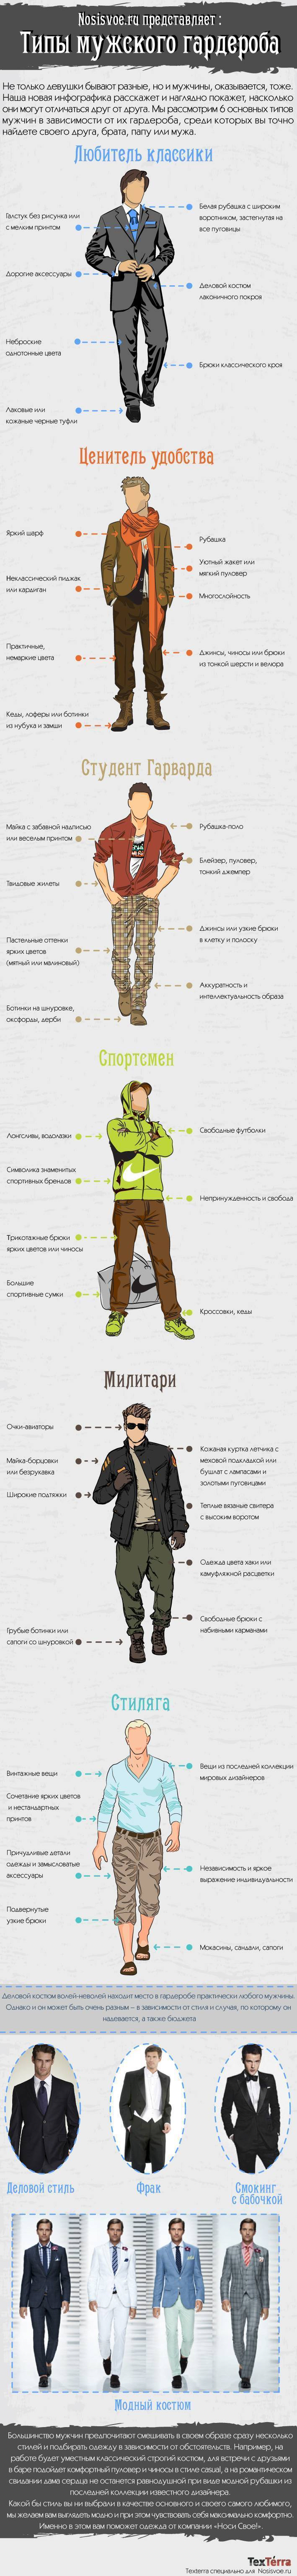 Infographic: Types of Men's Outfits